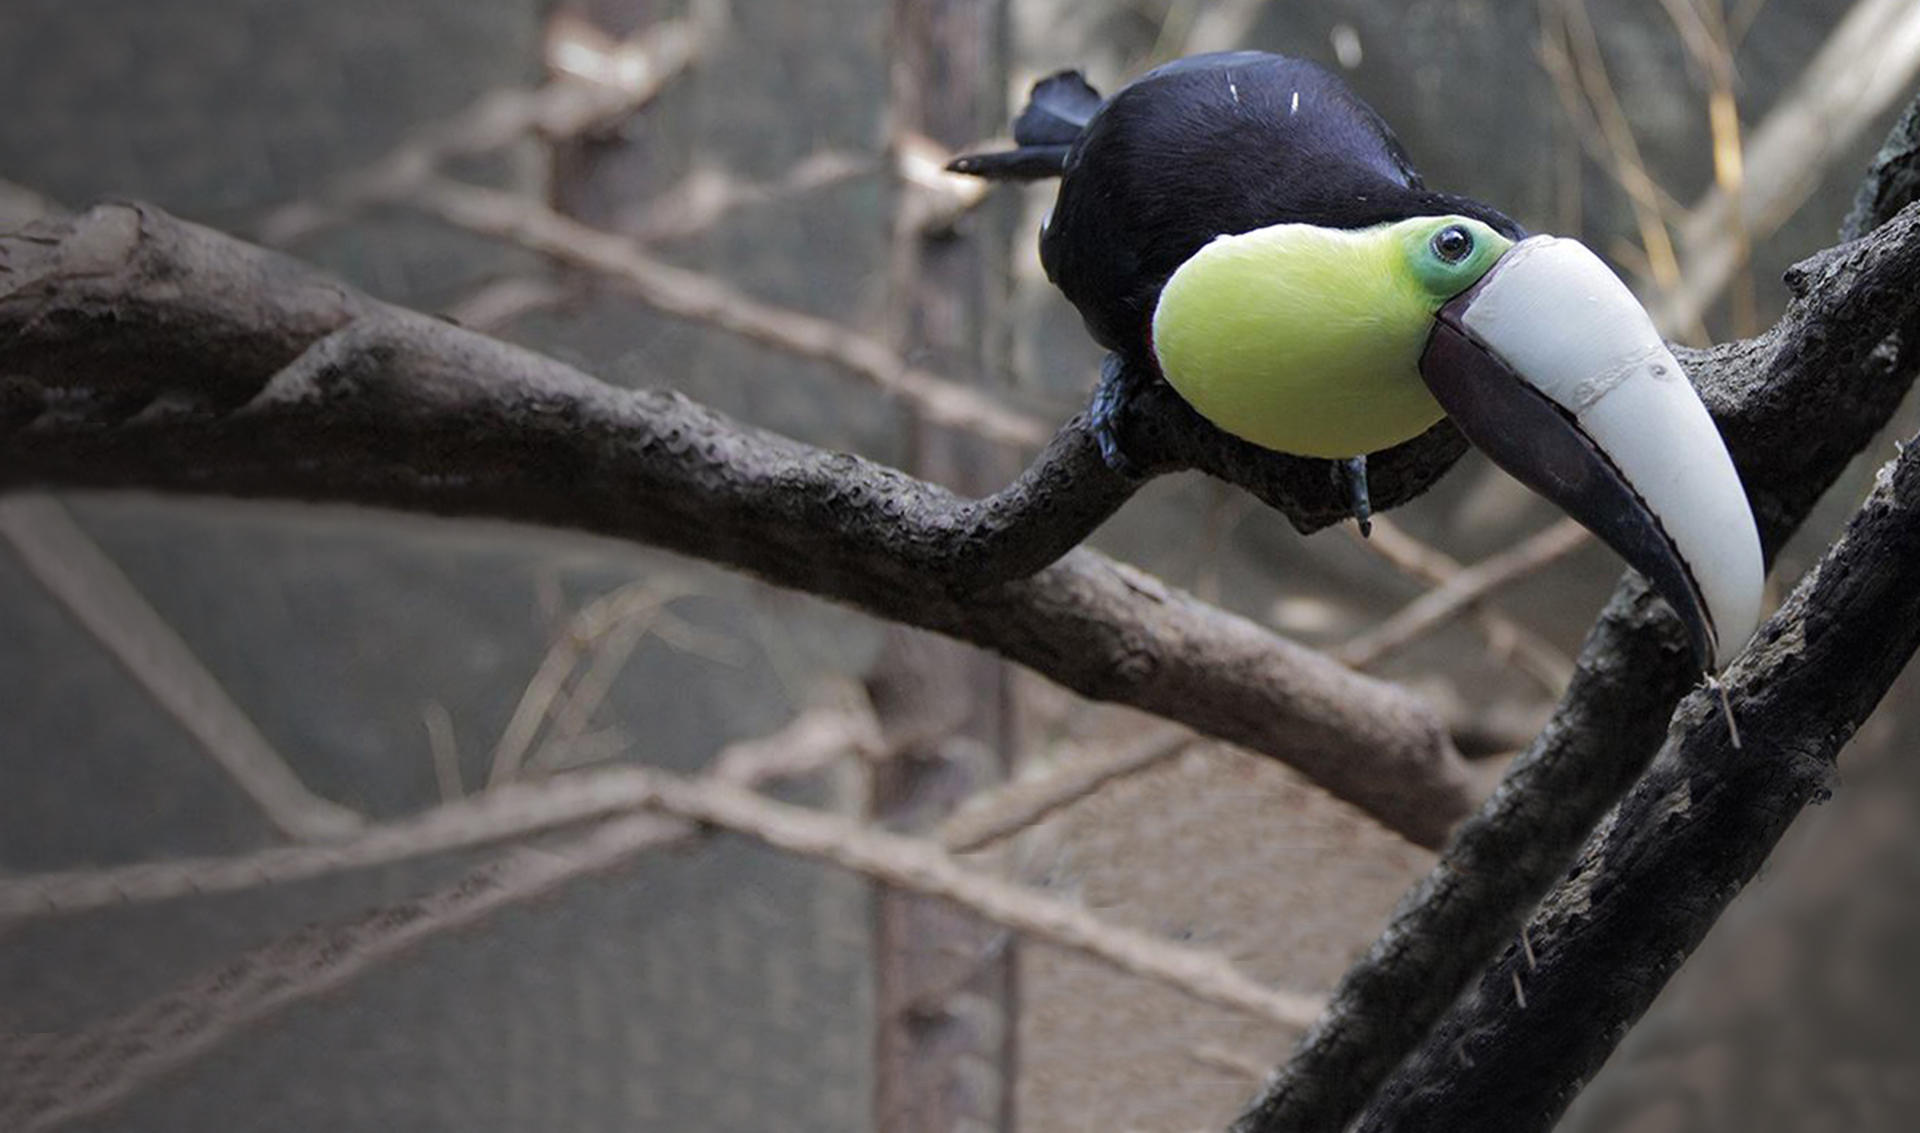 3D printed prosthetic beak for Grecia the Toucan